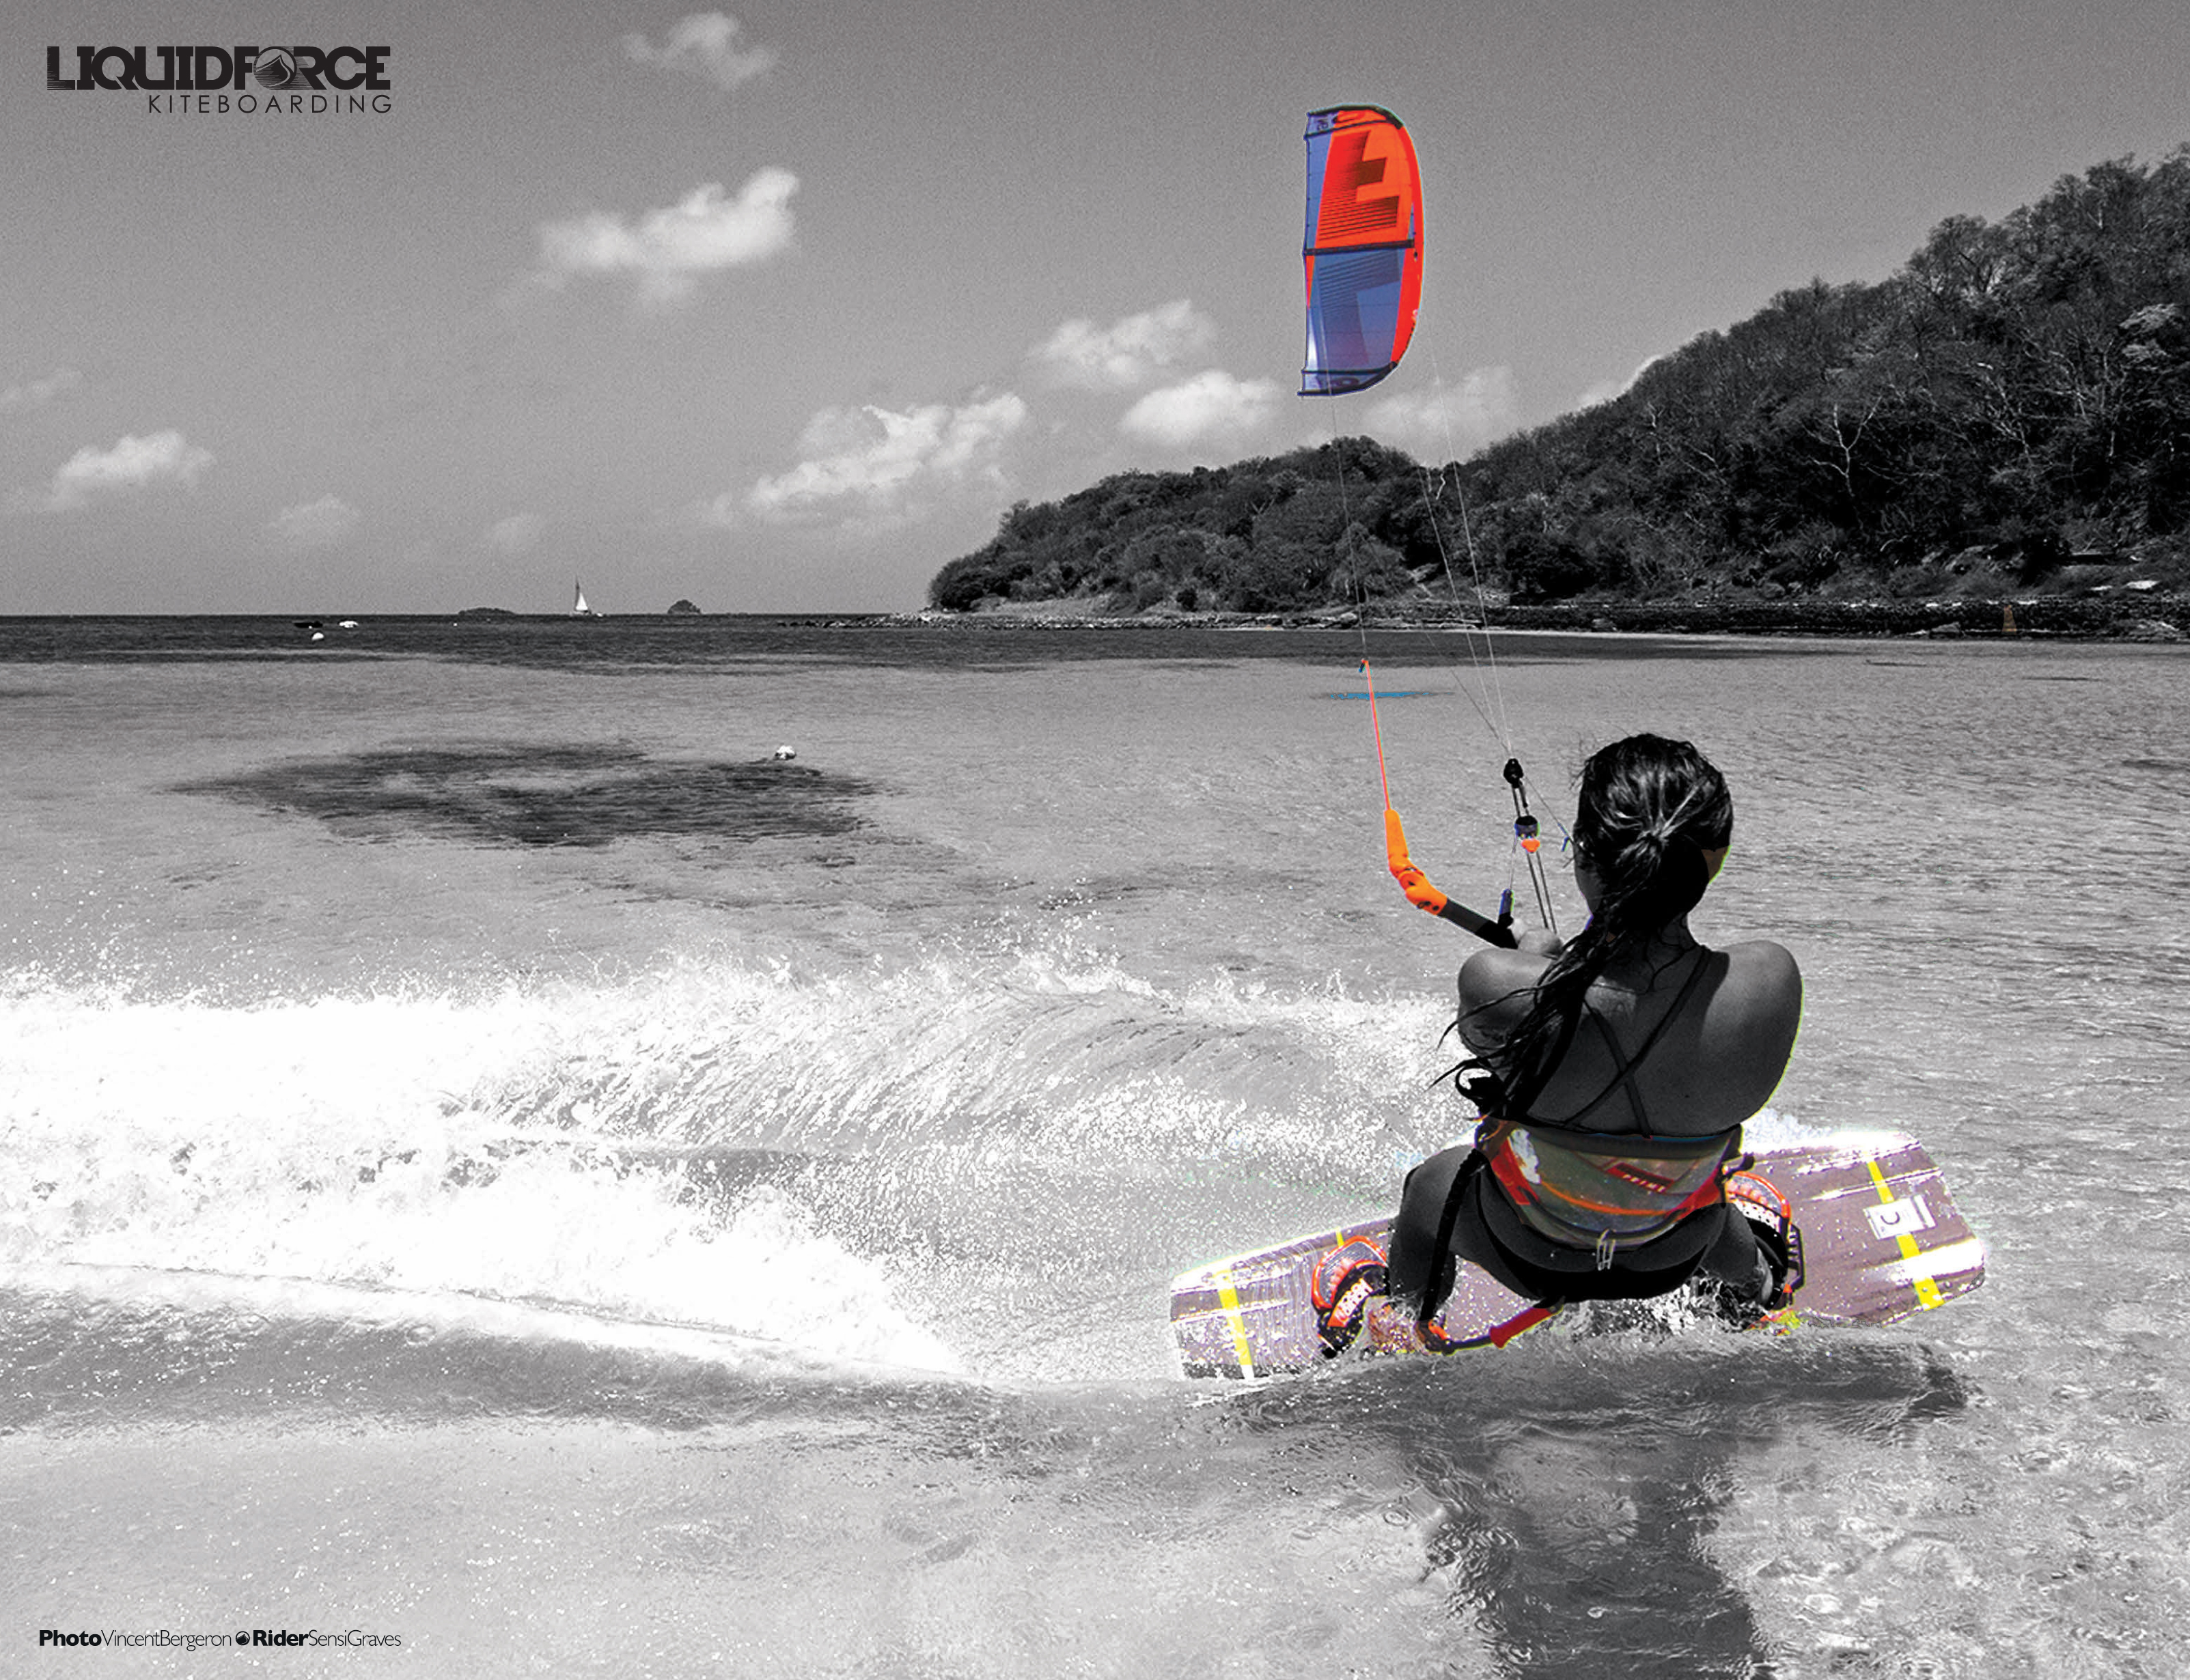 kitesurf wallpaper image - Sensi Graves with the 2015 Liquid Force Envy Kite and riding the carbon element kiteboard - in resolution: Original 3206 X 2460